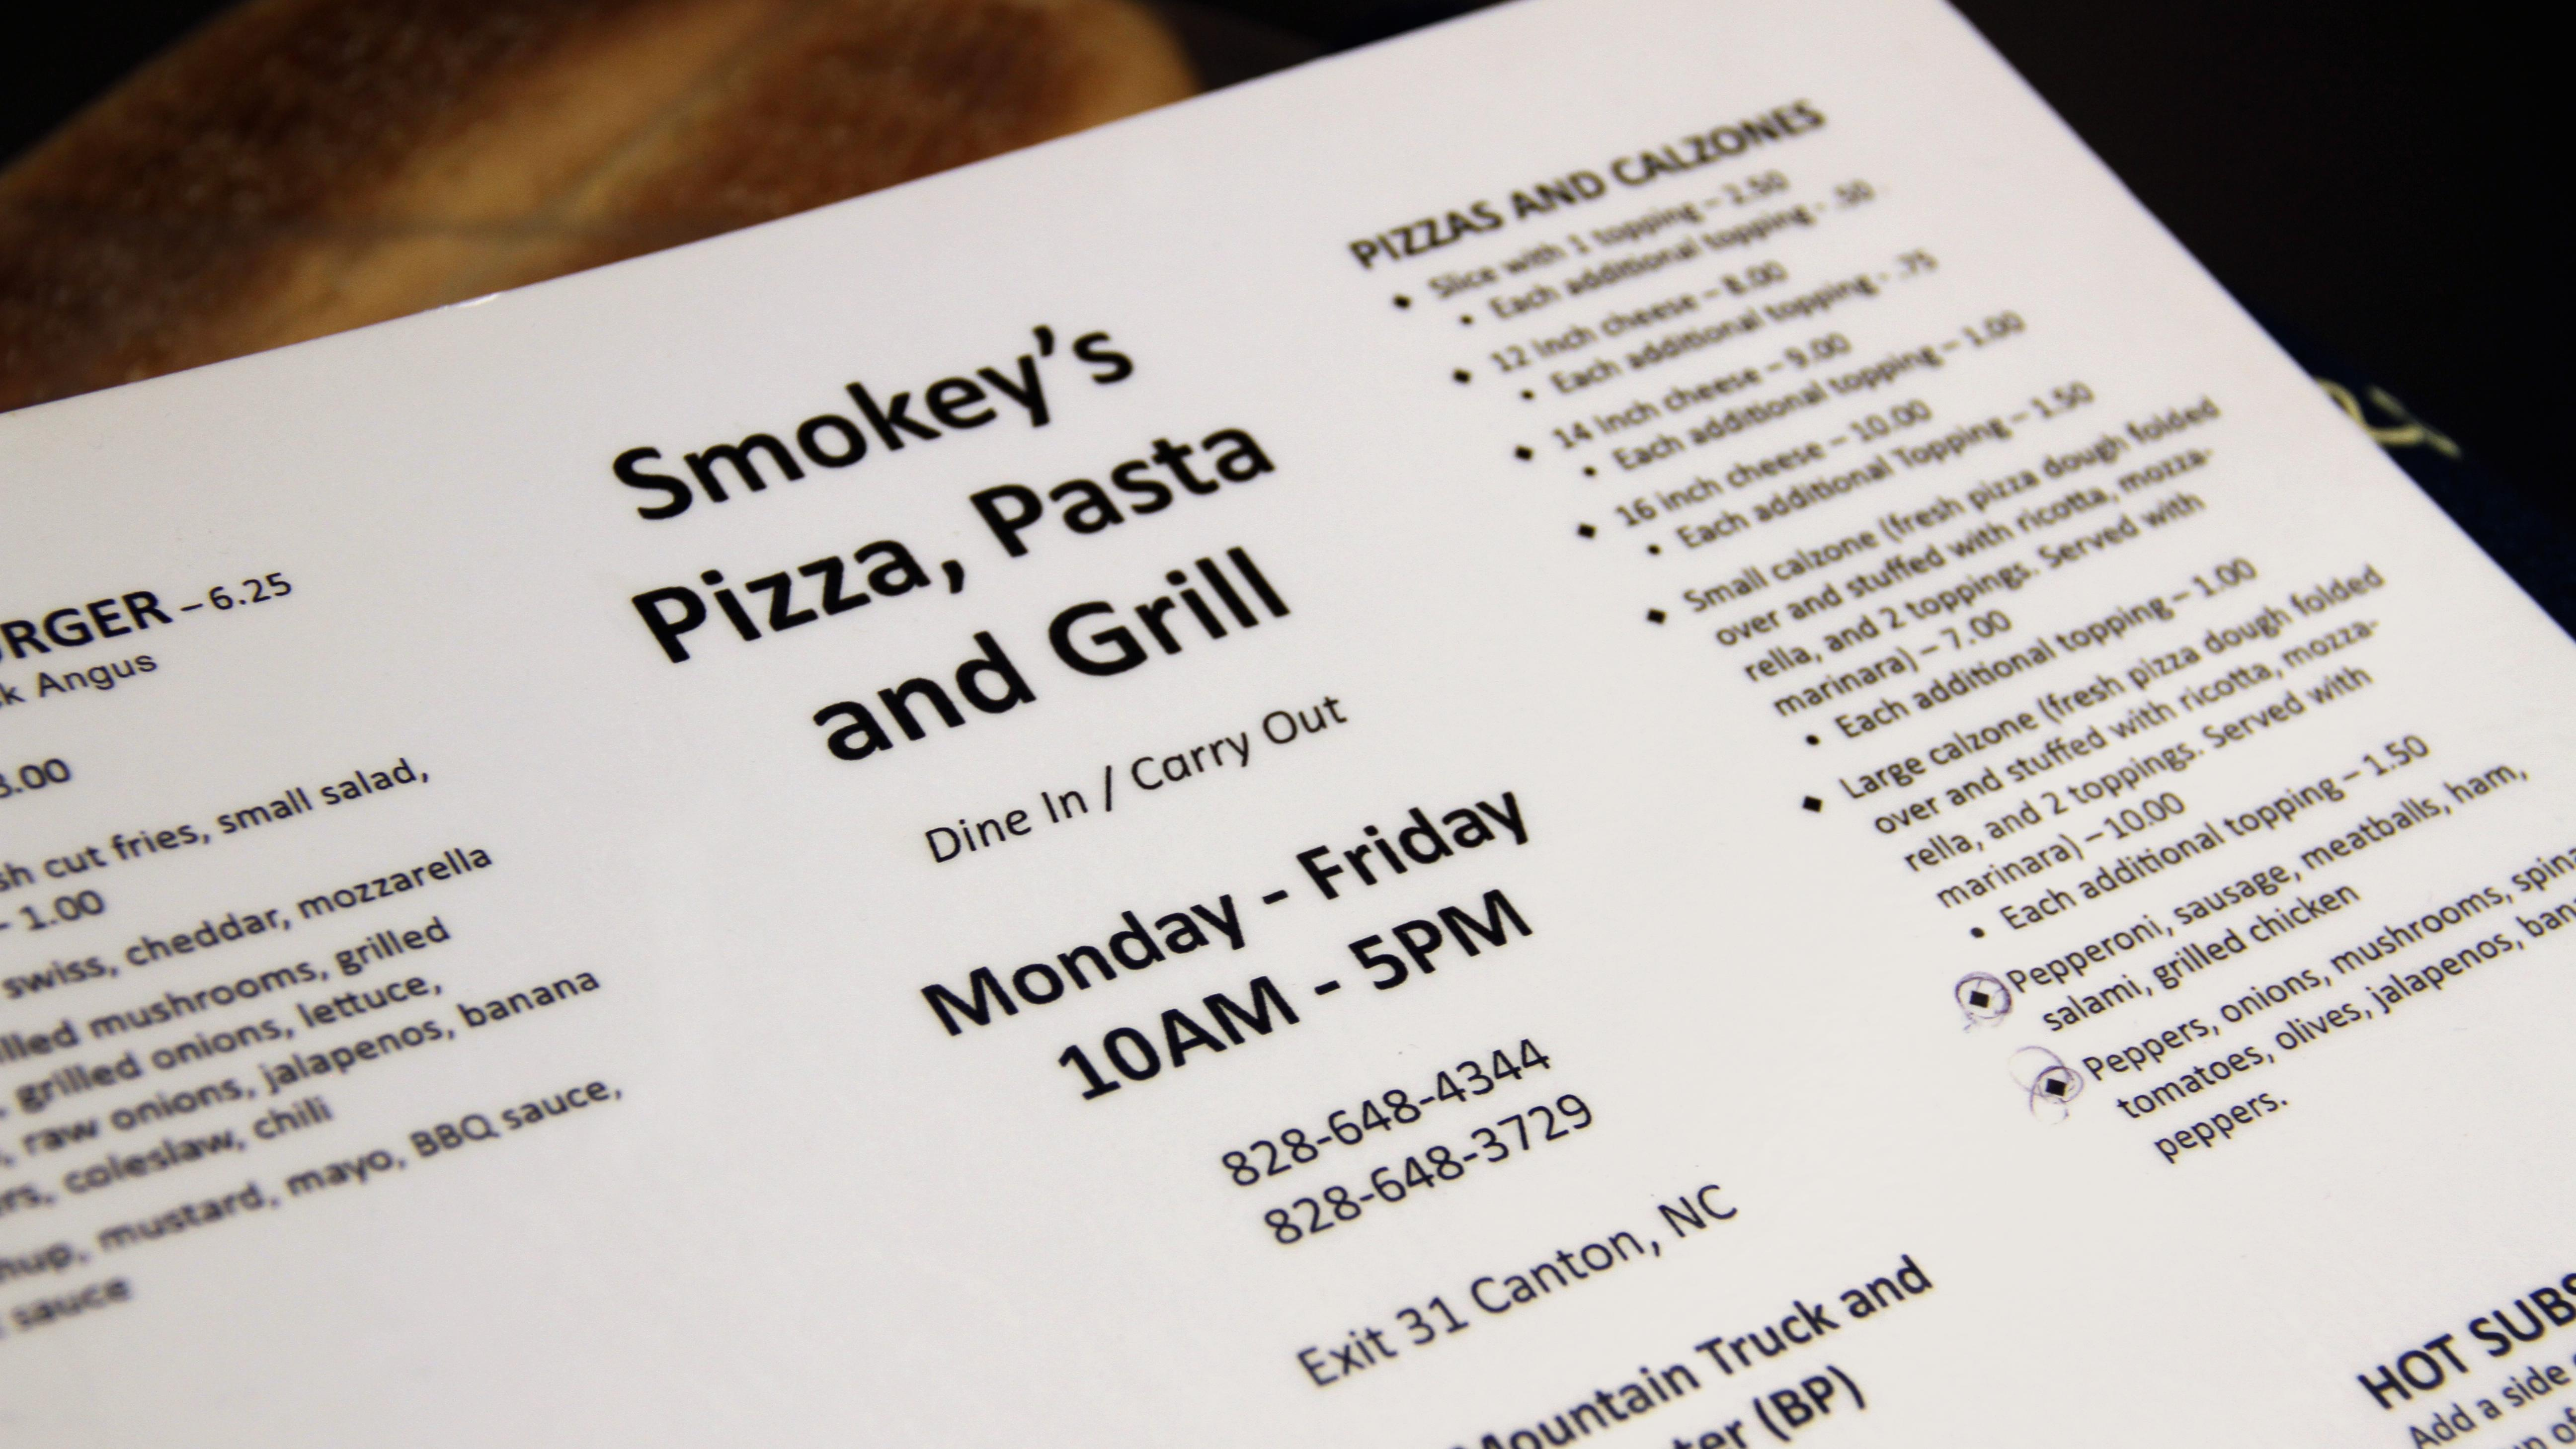 Smokey's Pizza, Pasta and Grill is a hidden gem inside the BP gas station just off Interstate 40. (Photo credit: WLOS Staff)